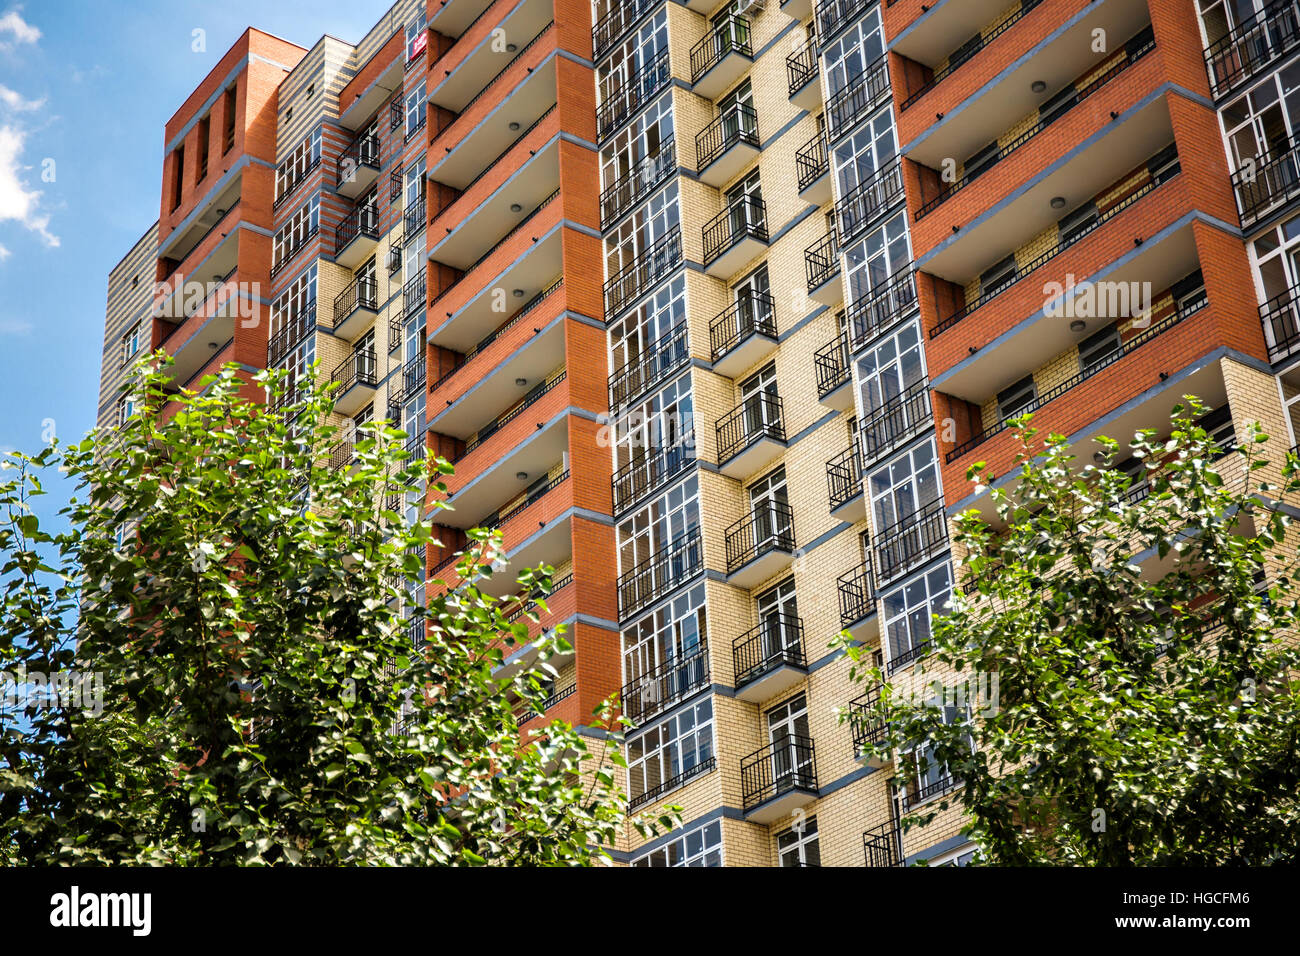 New modern multistorey apartment building with tree on the foreground - Stock Image